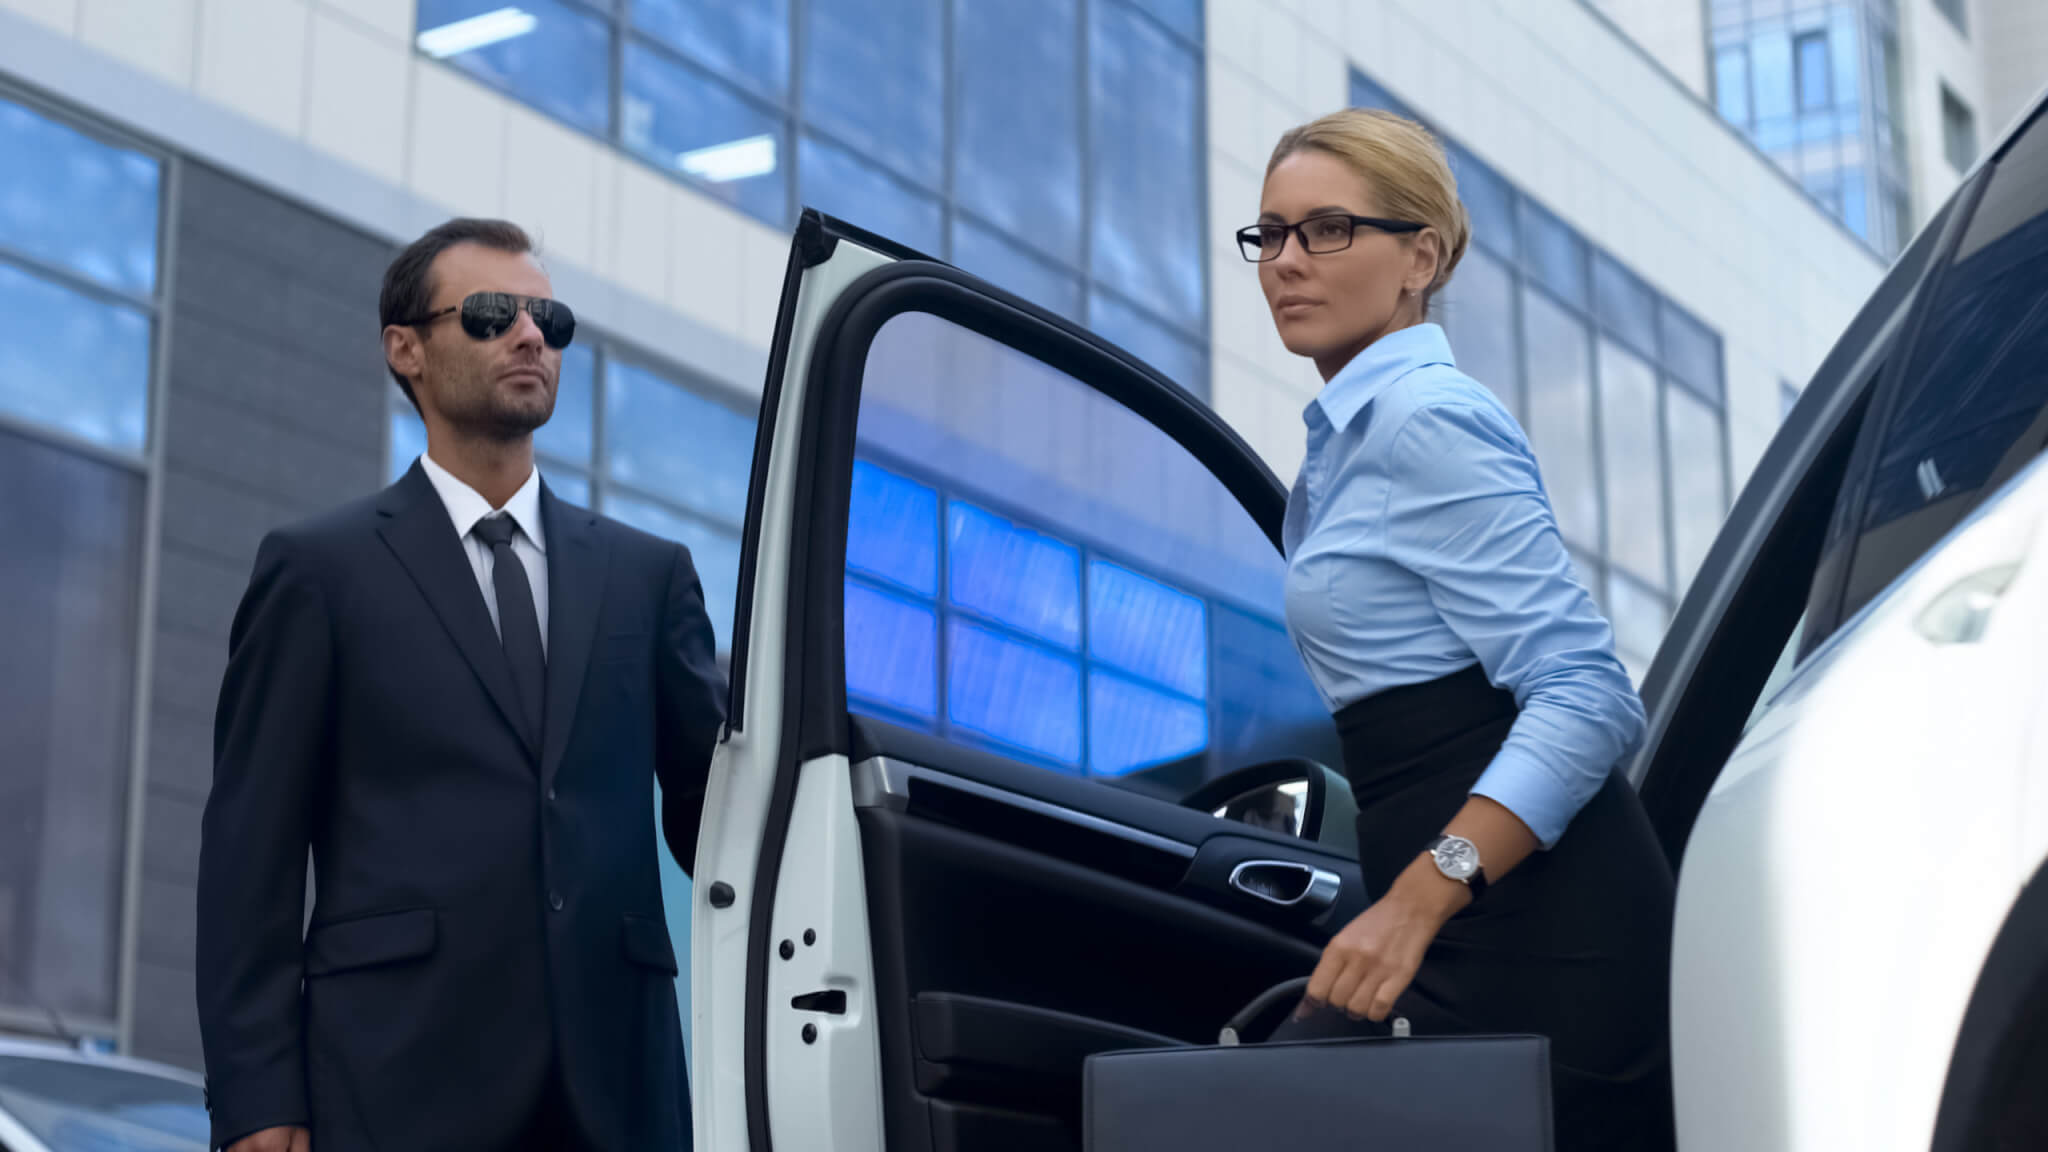 executive protection services in sunnyvale